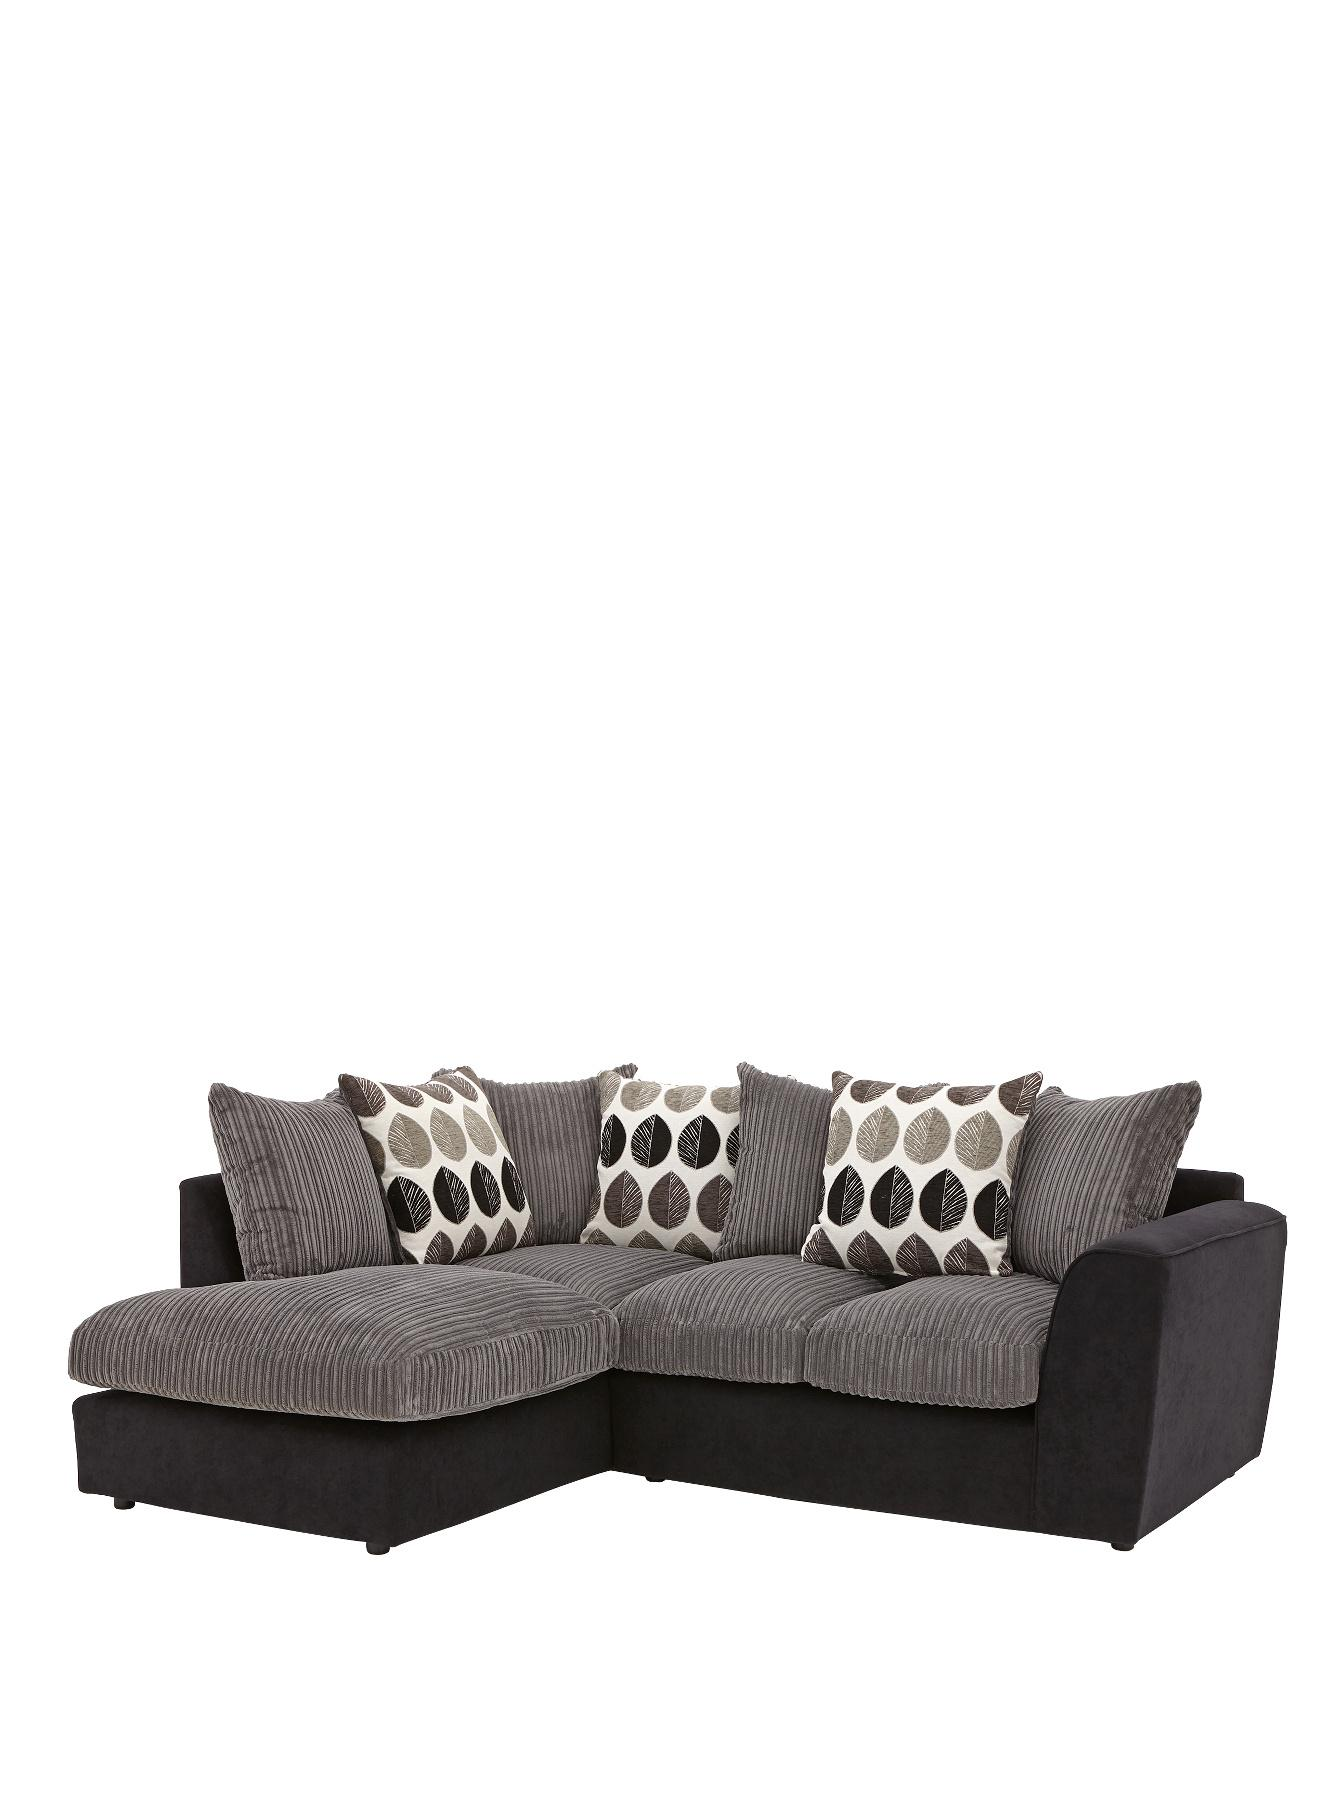 Ava Left Hand Corner Chaise Sofa - Grey, Grey,Black.